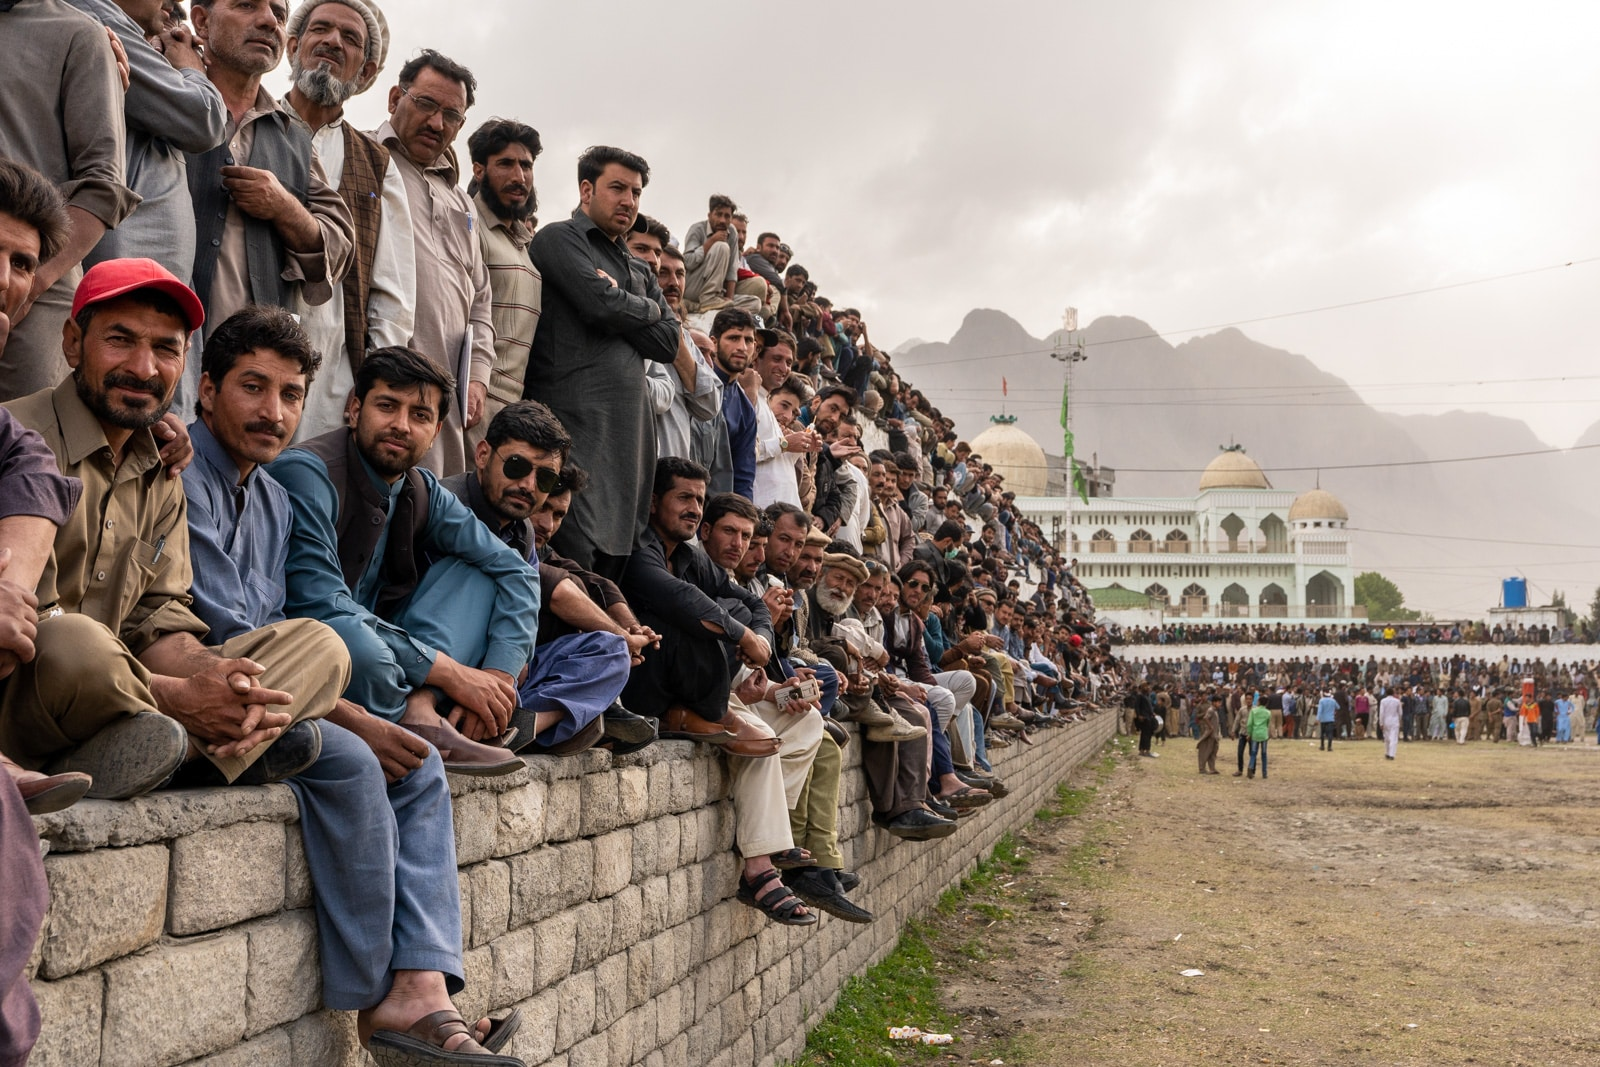 Men staring at a polo match in Gilgit, Pakistan